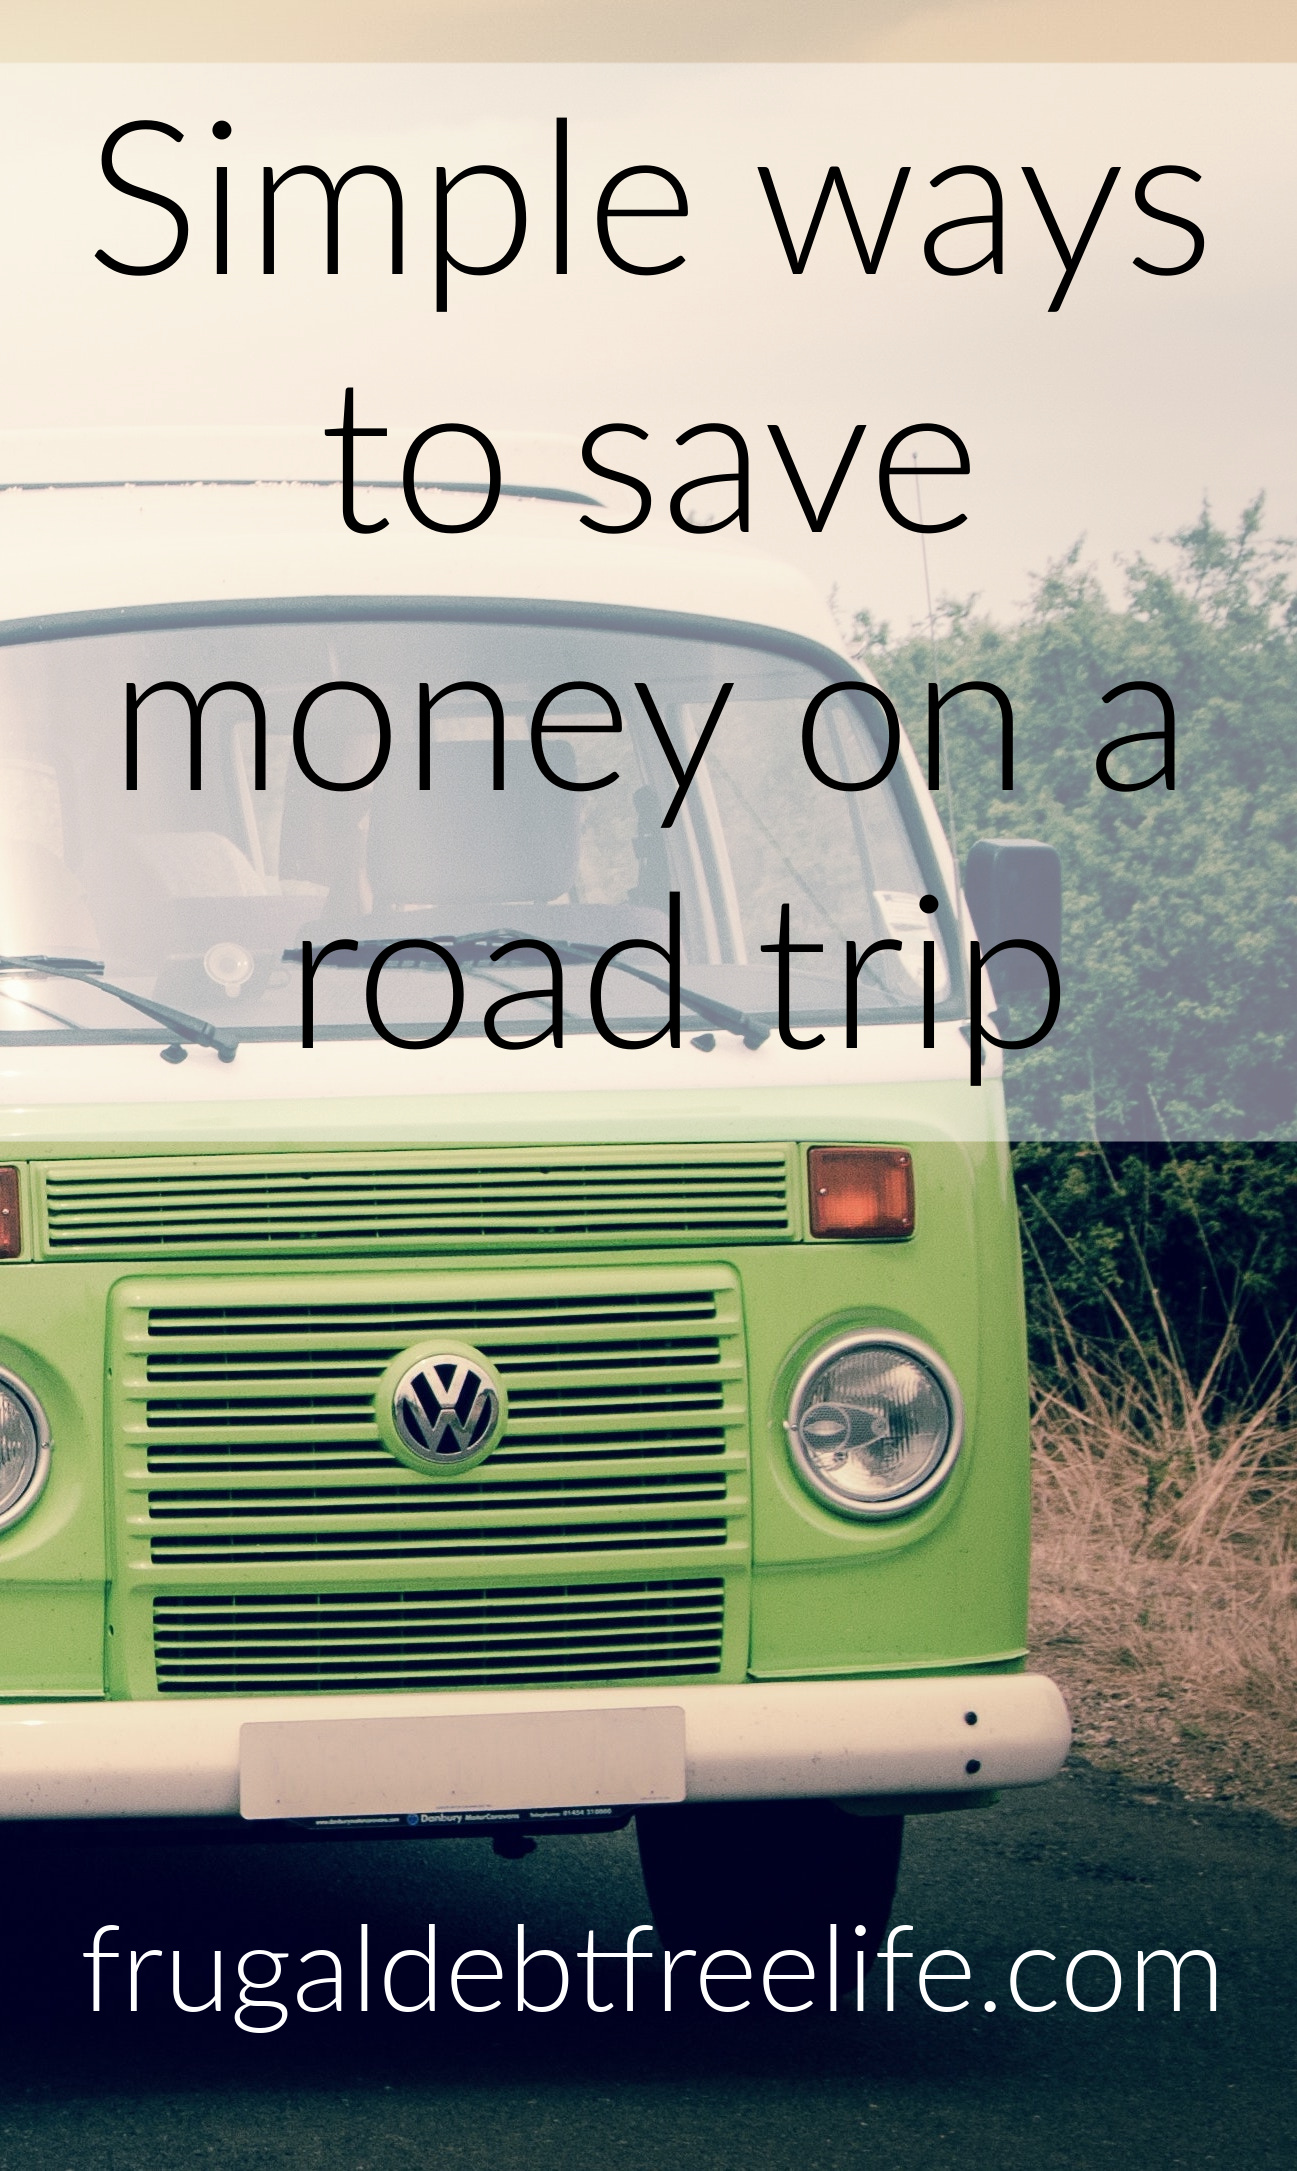 simple ways to save on road trips.jpg